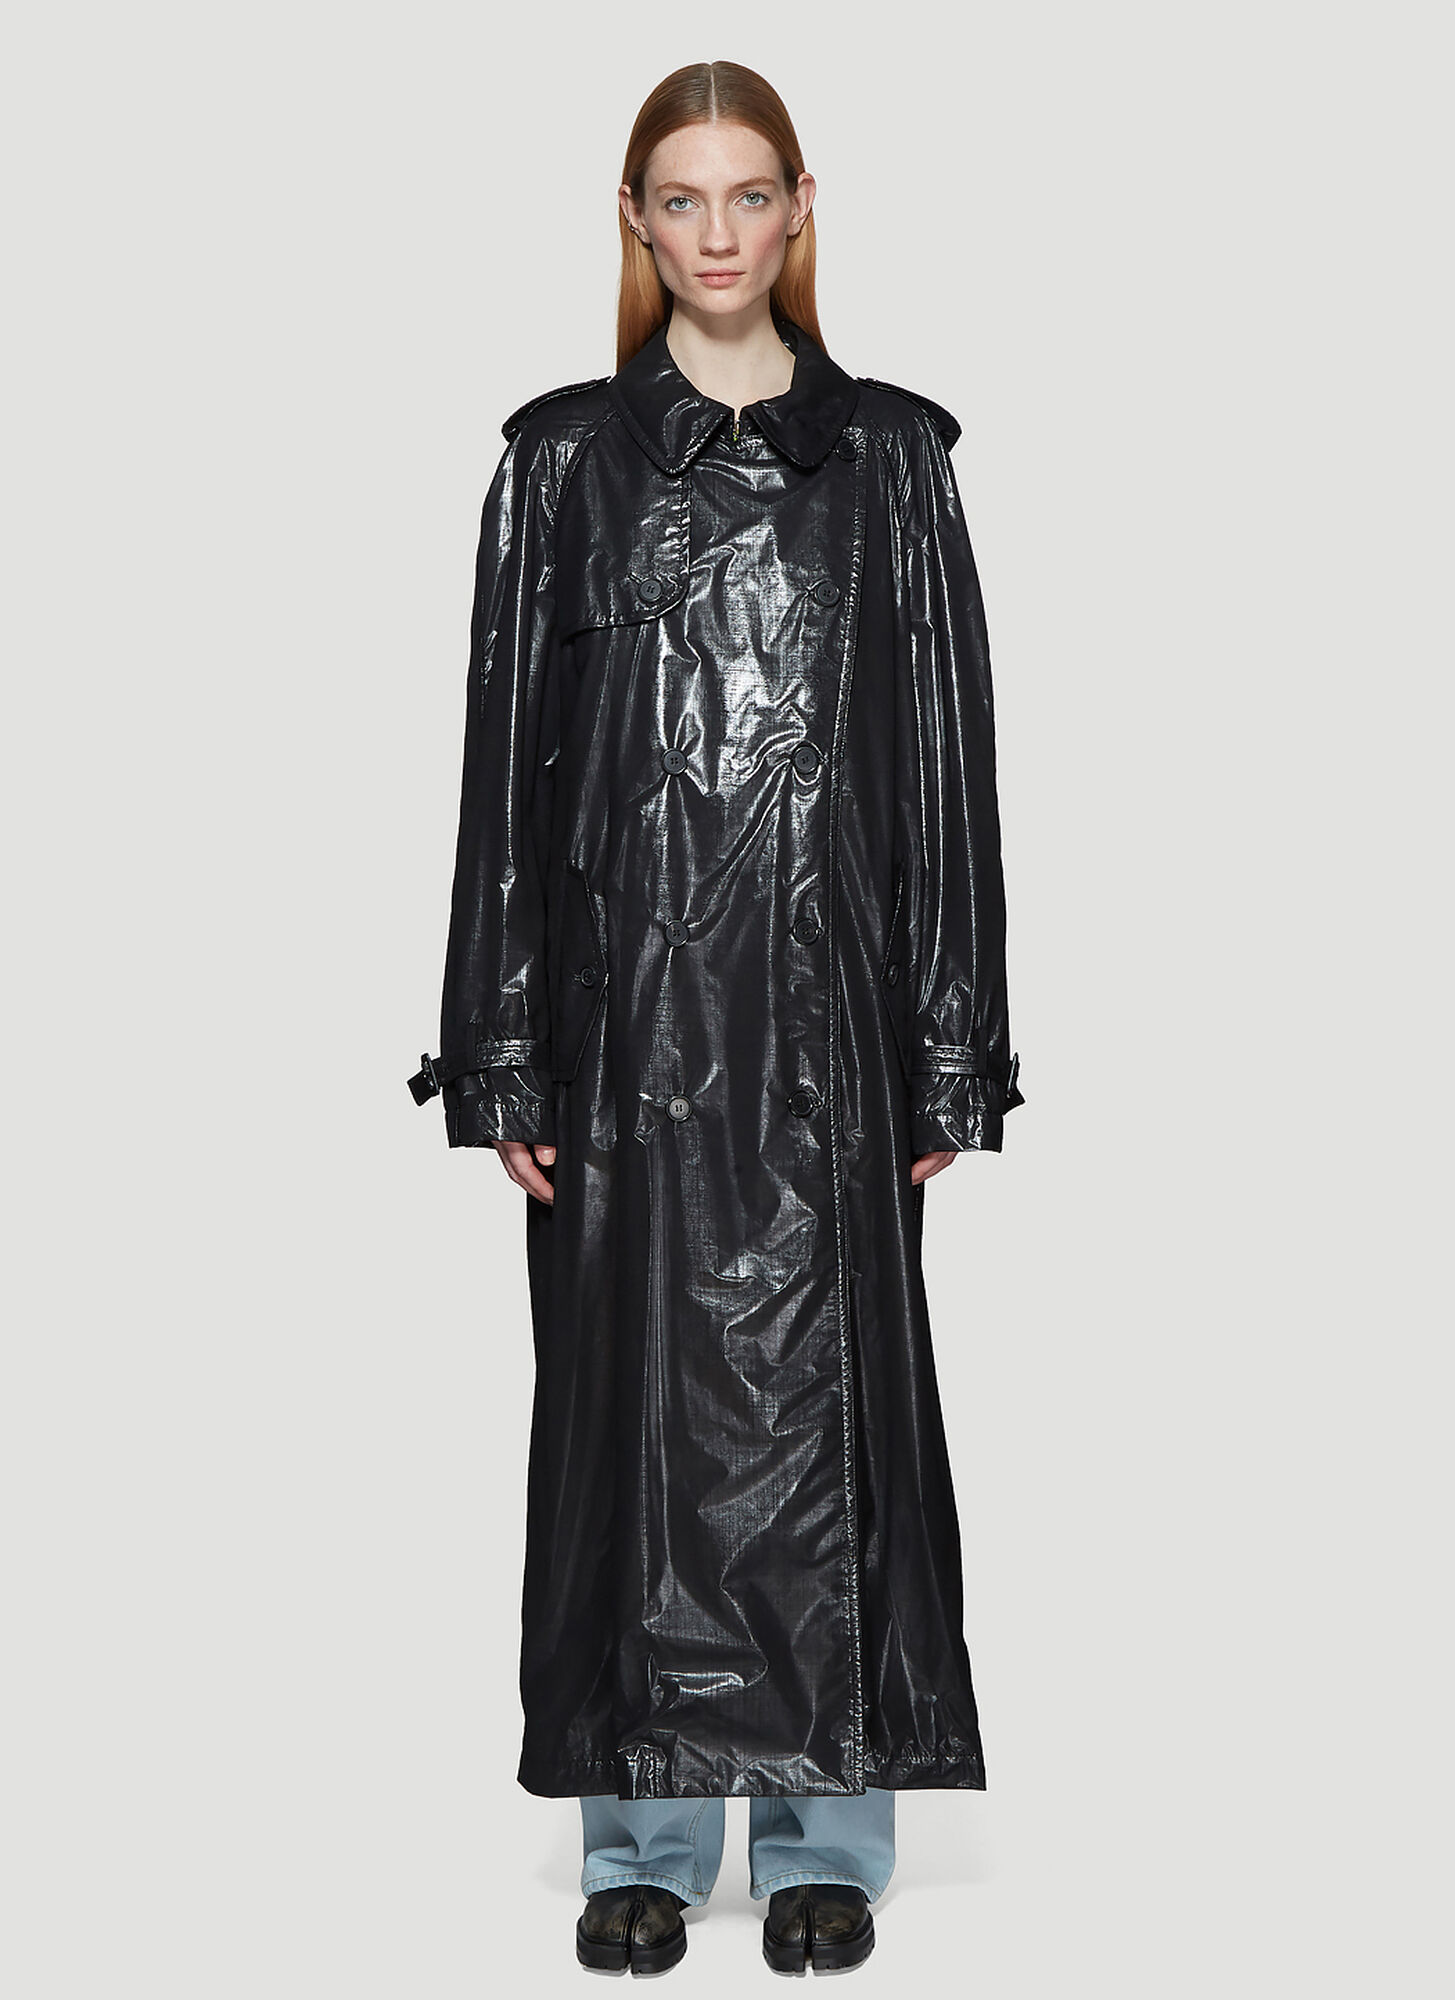 Maison Margiela Sheer Layer Metallic Trench Coat in Black